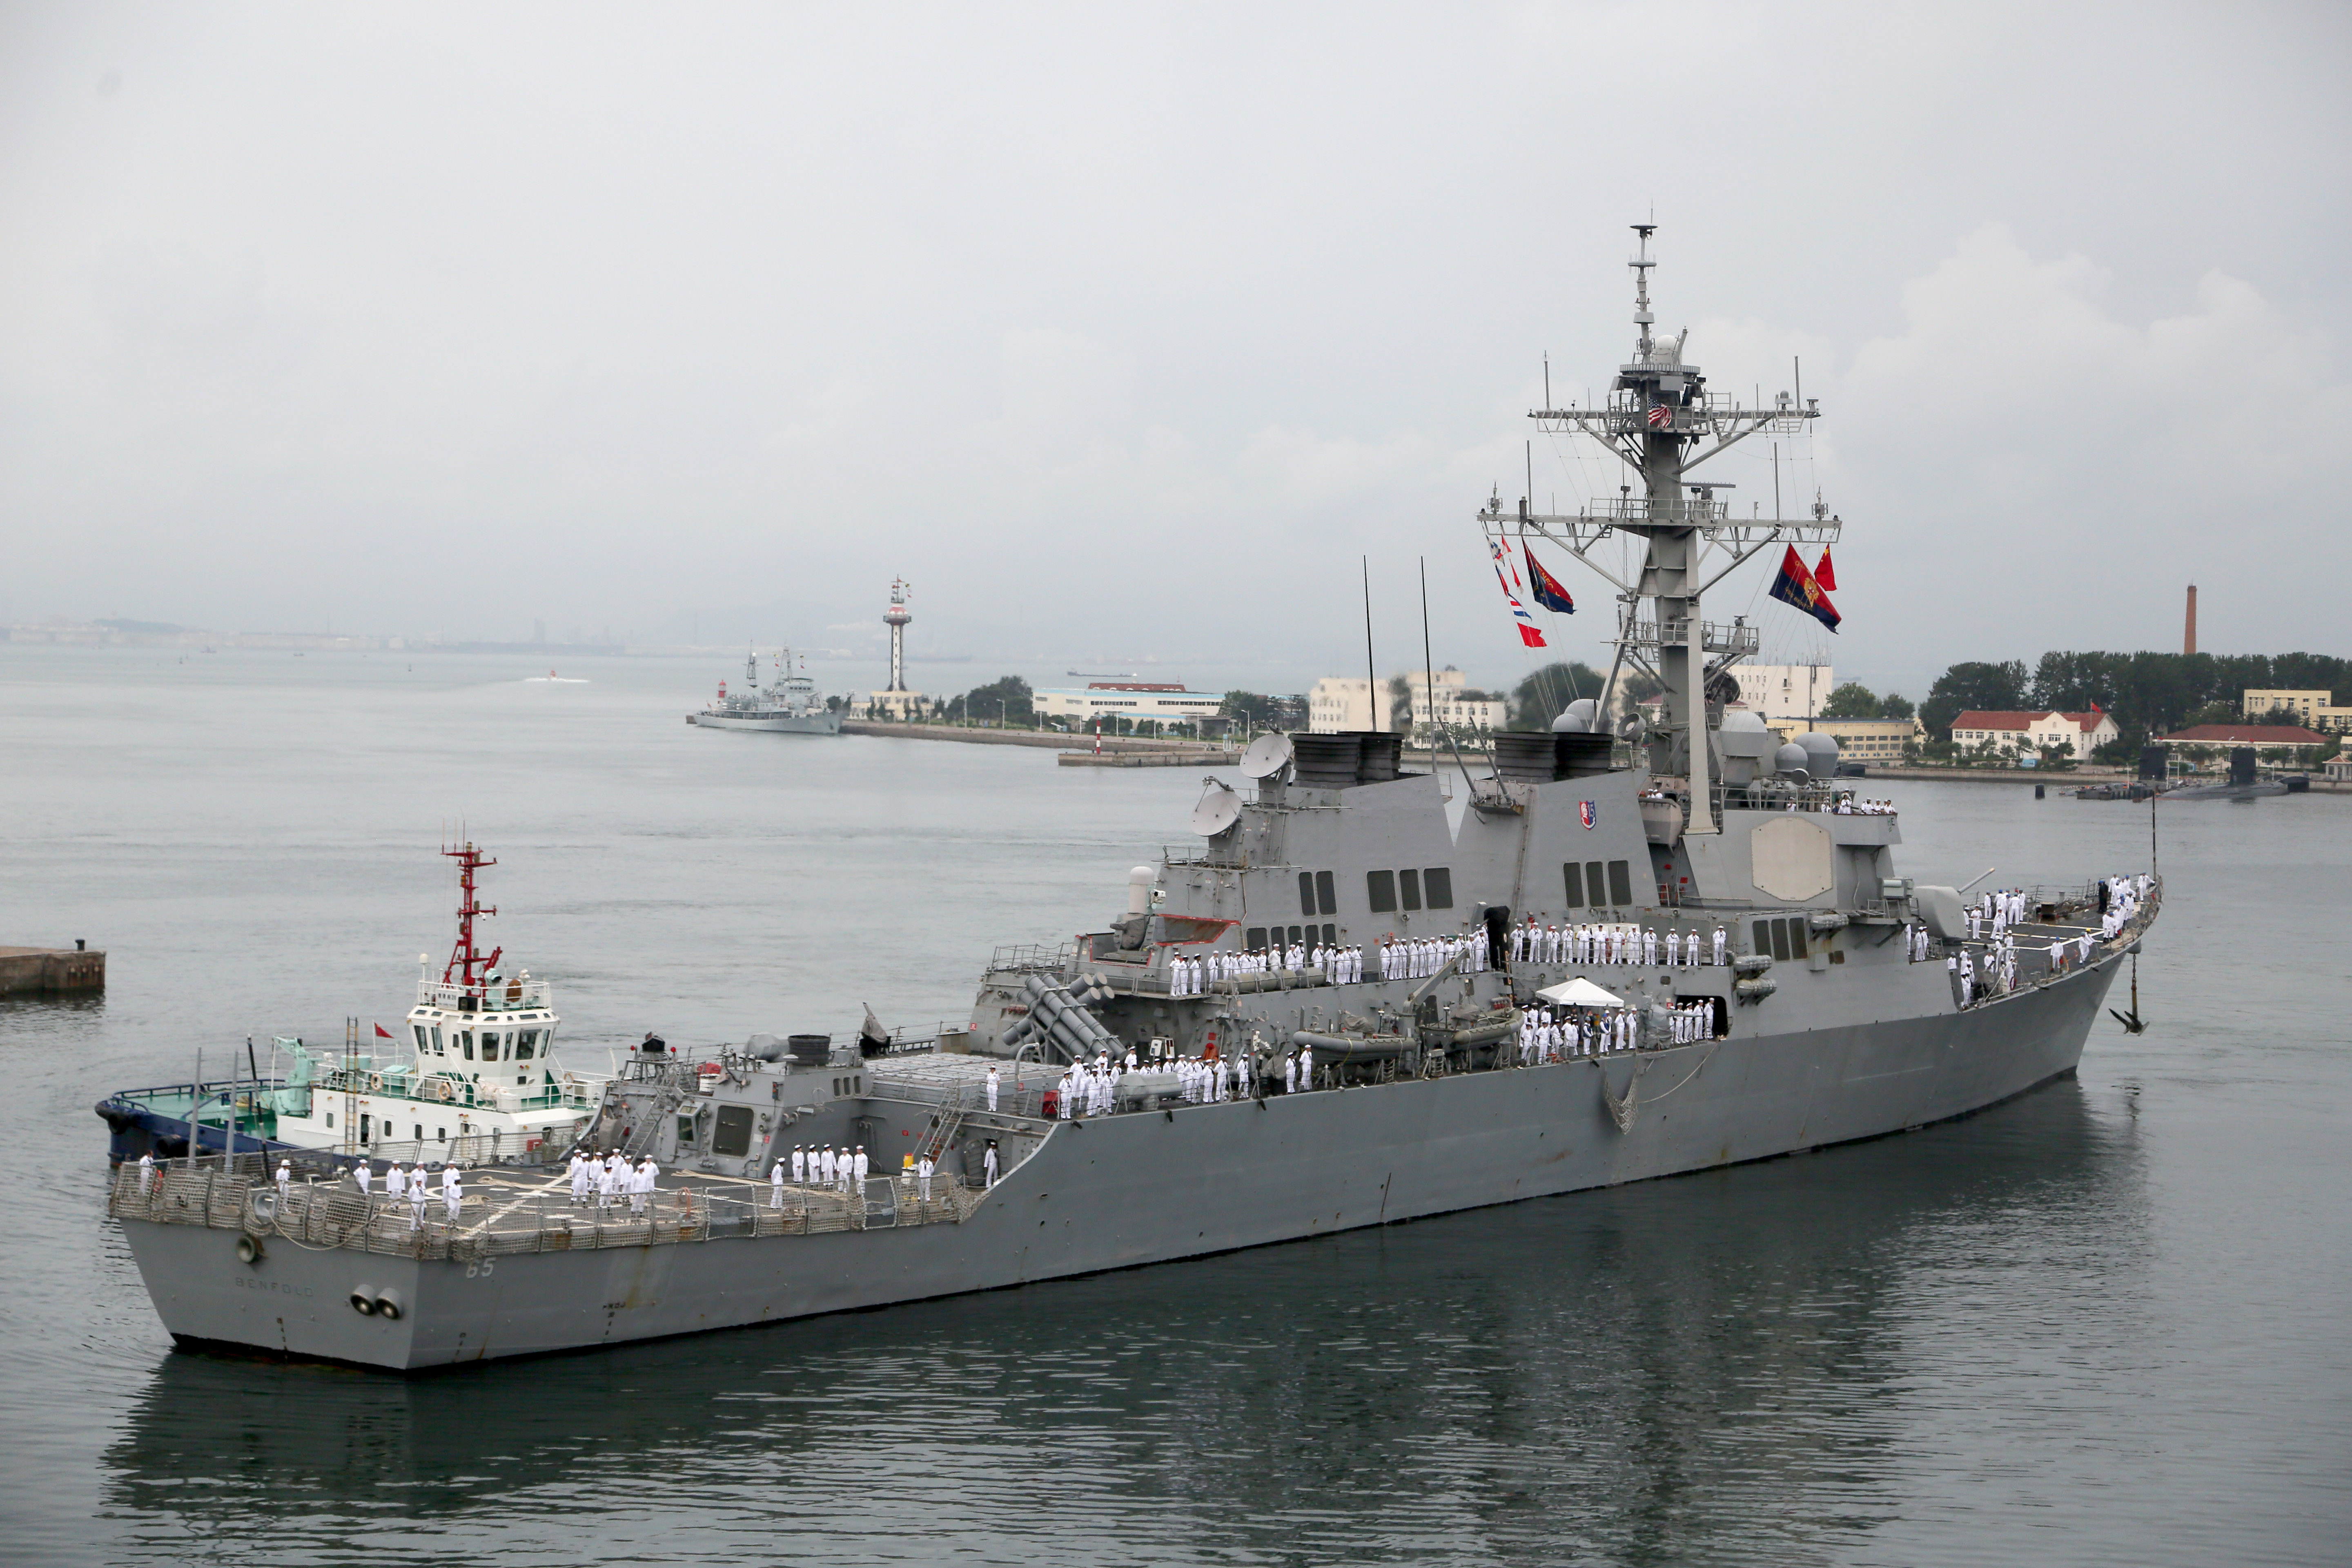 U.S. Navy guided missile destroyer USS Benfold in Qingdao, China in 2016.